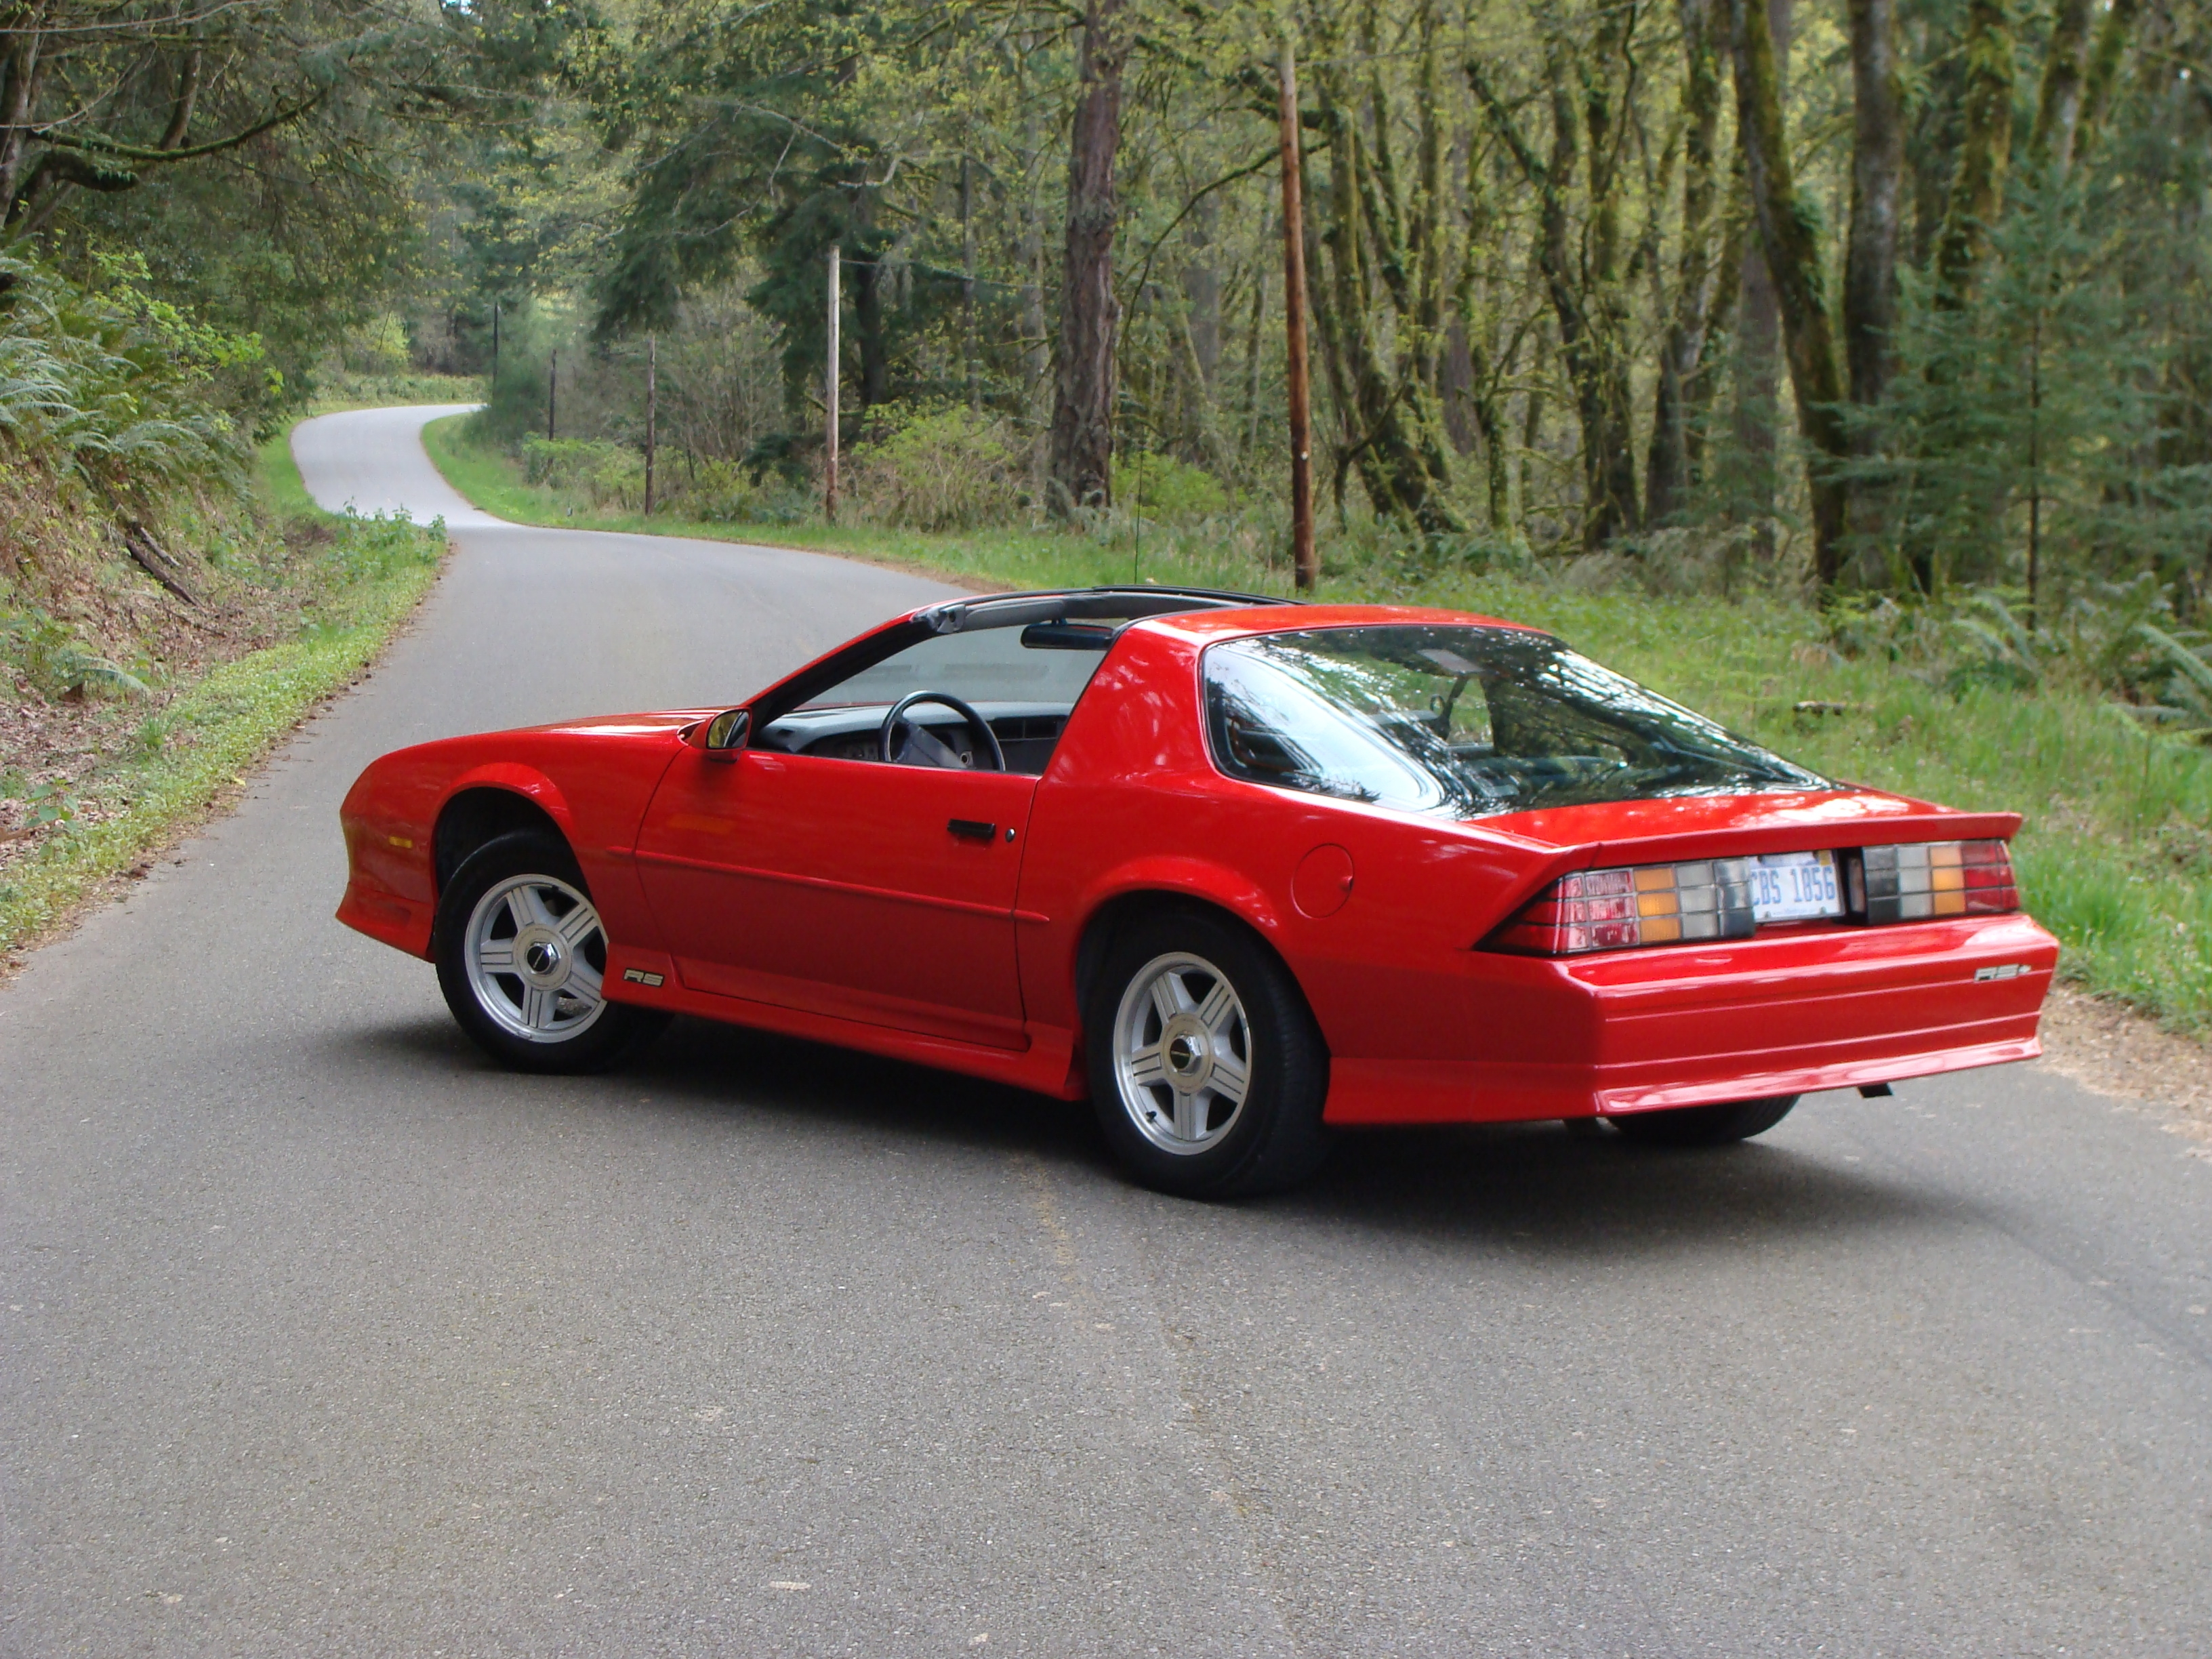 25thann rs 39 s 1992 chevrolet camaro rs coupe 2d in fairbanks ak. Black Bedroom Furniture Sets. Home Design Ideas